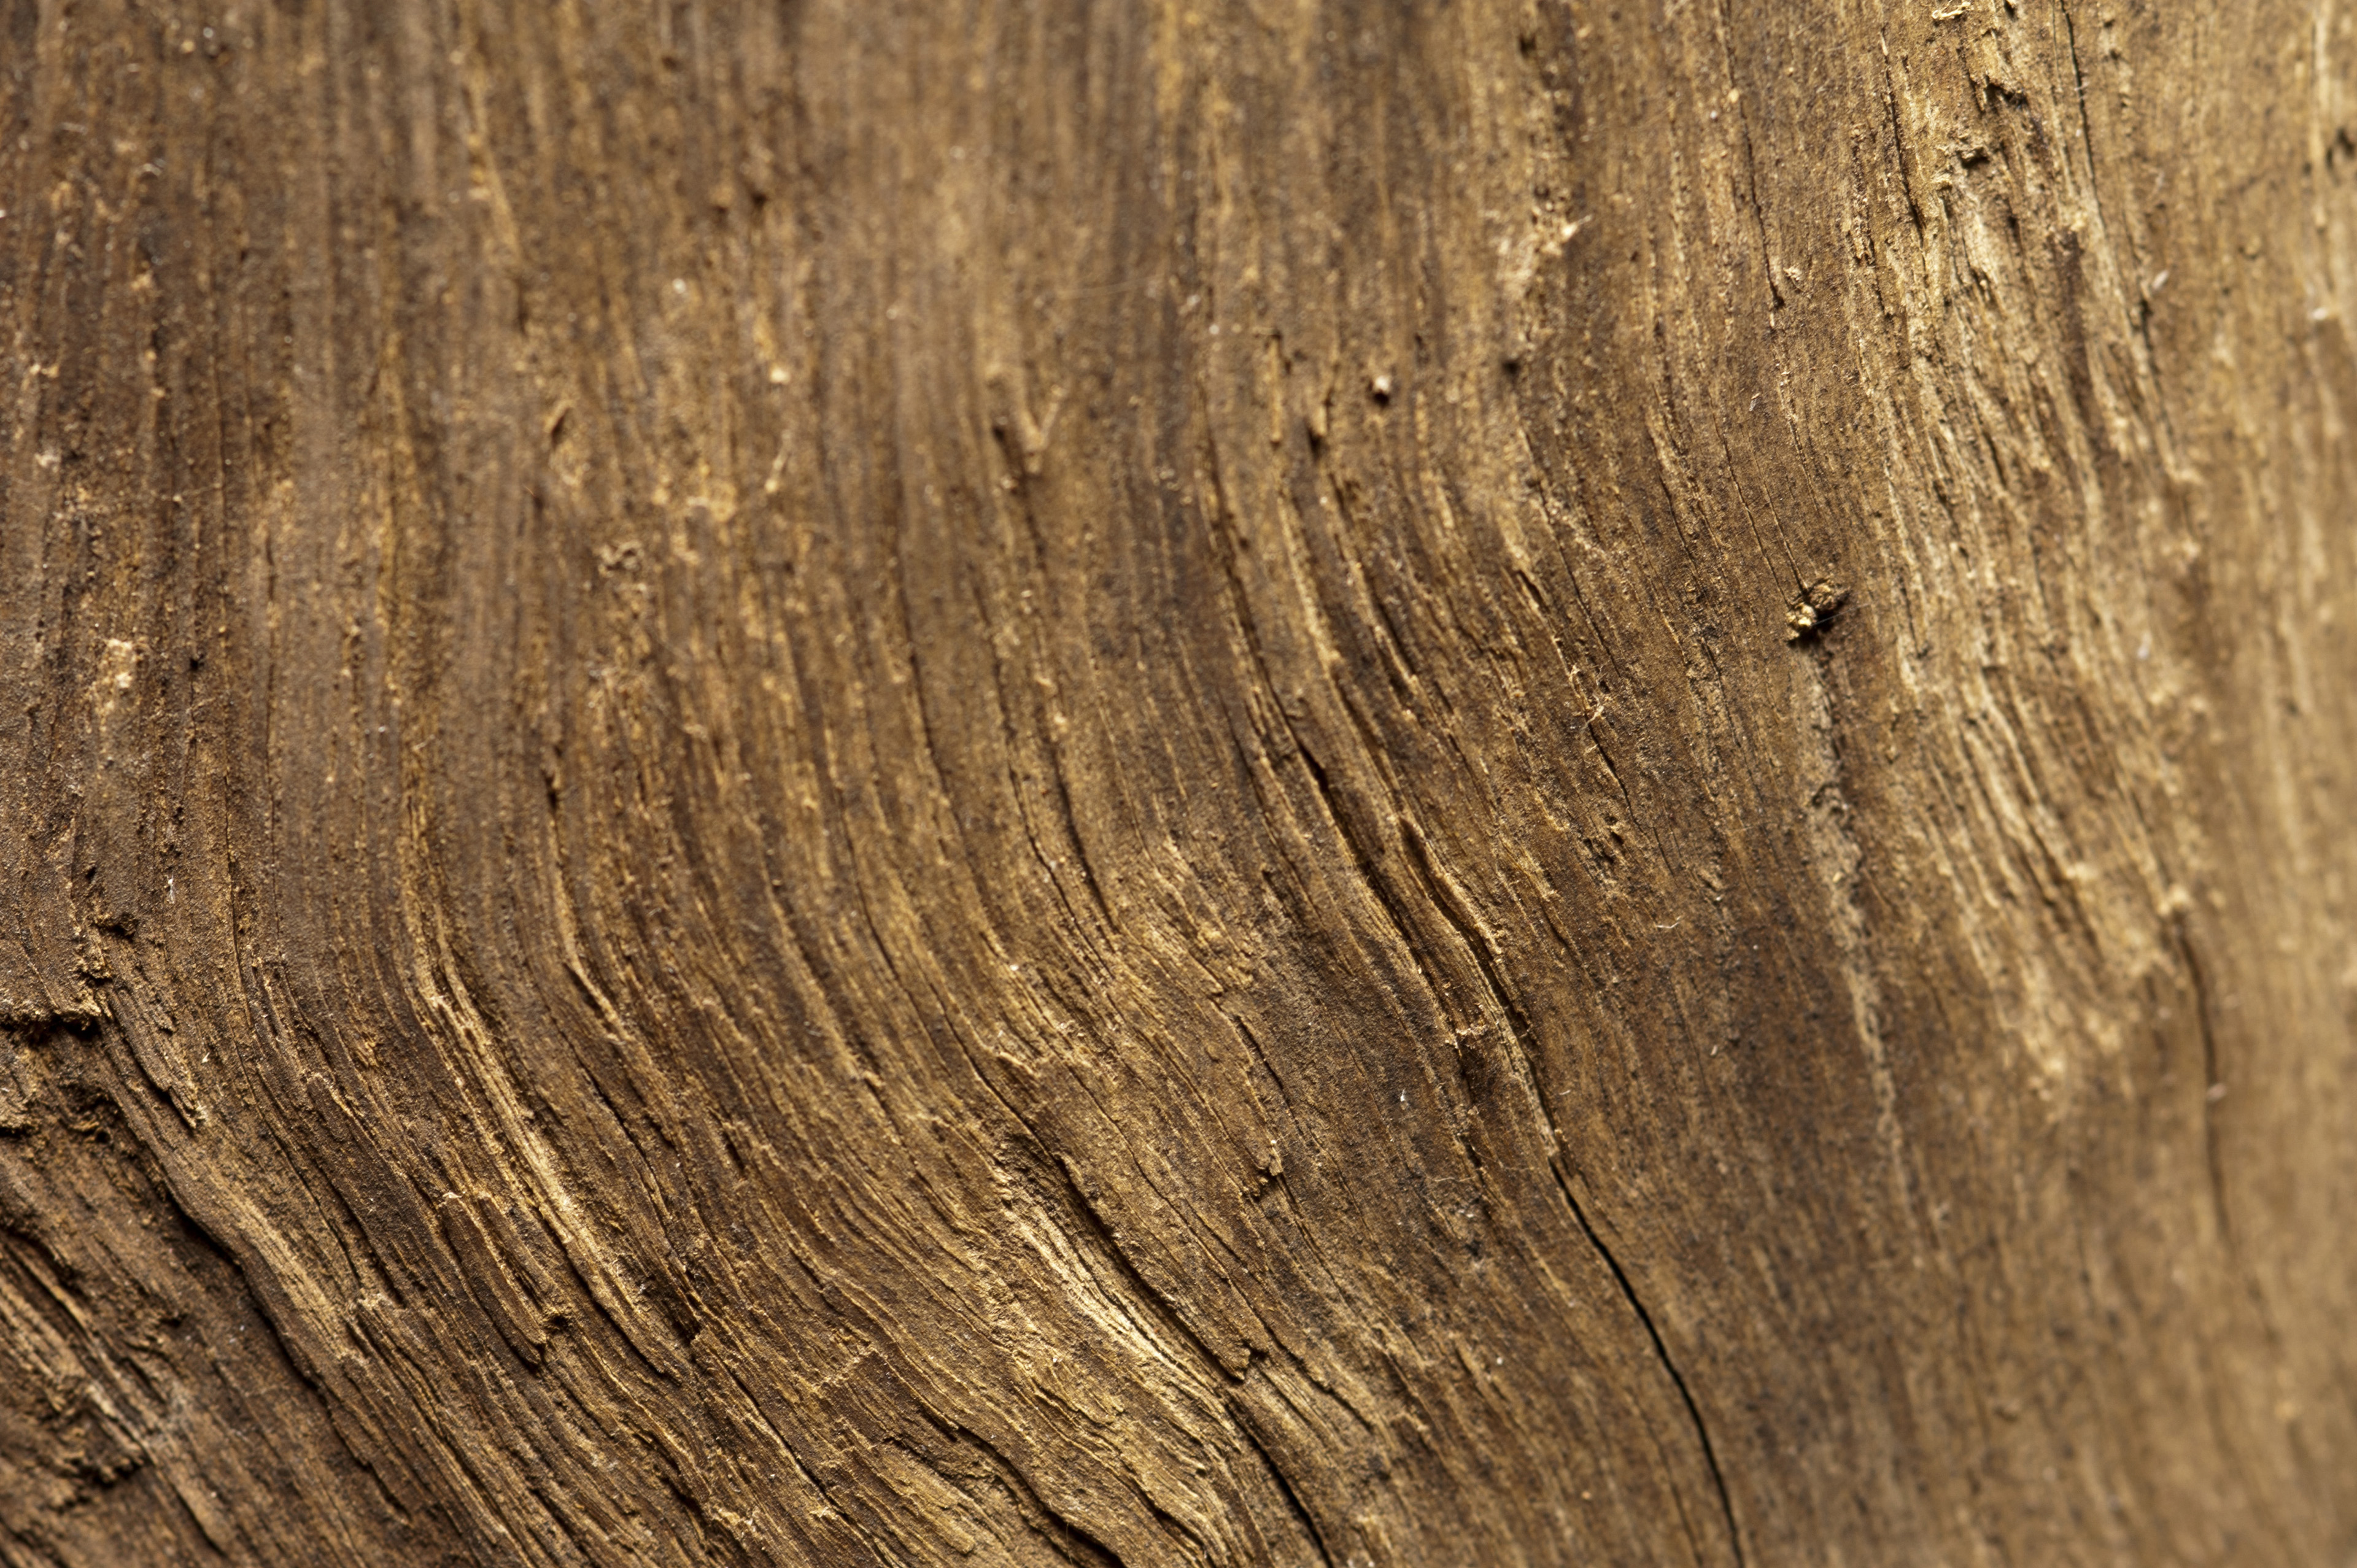 Rough Texture Background: Image Of Background Texture Of Rough Wood